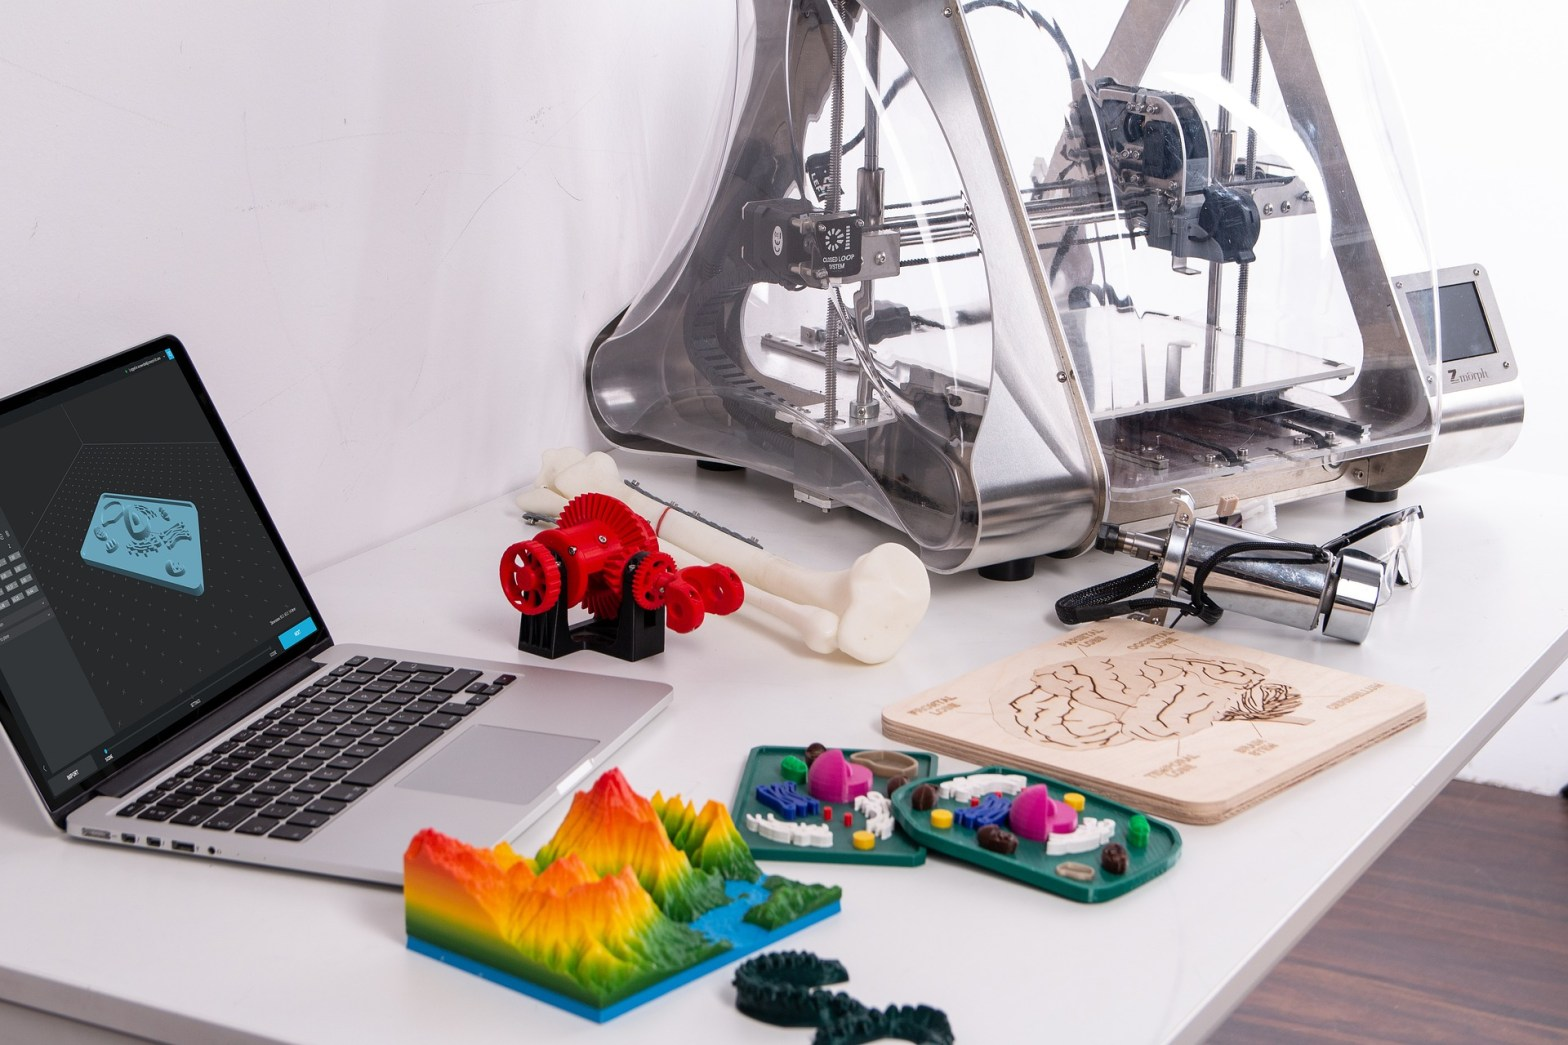 image of 3d printer and 3d printed objects